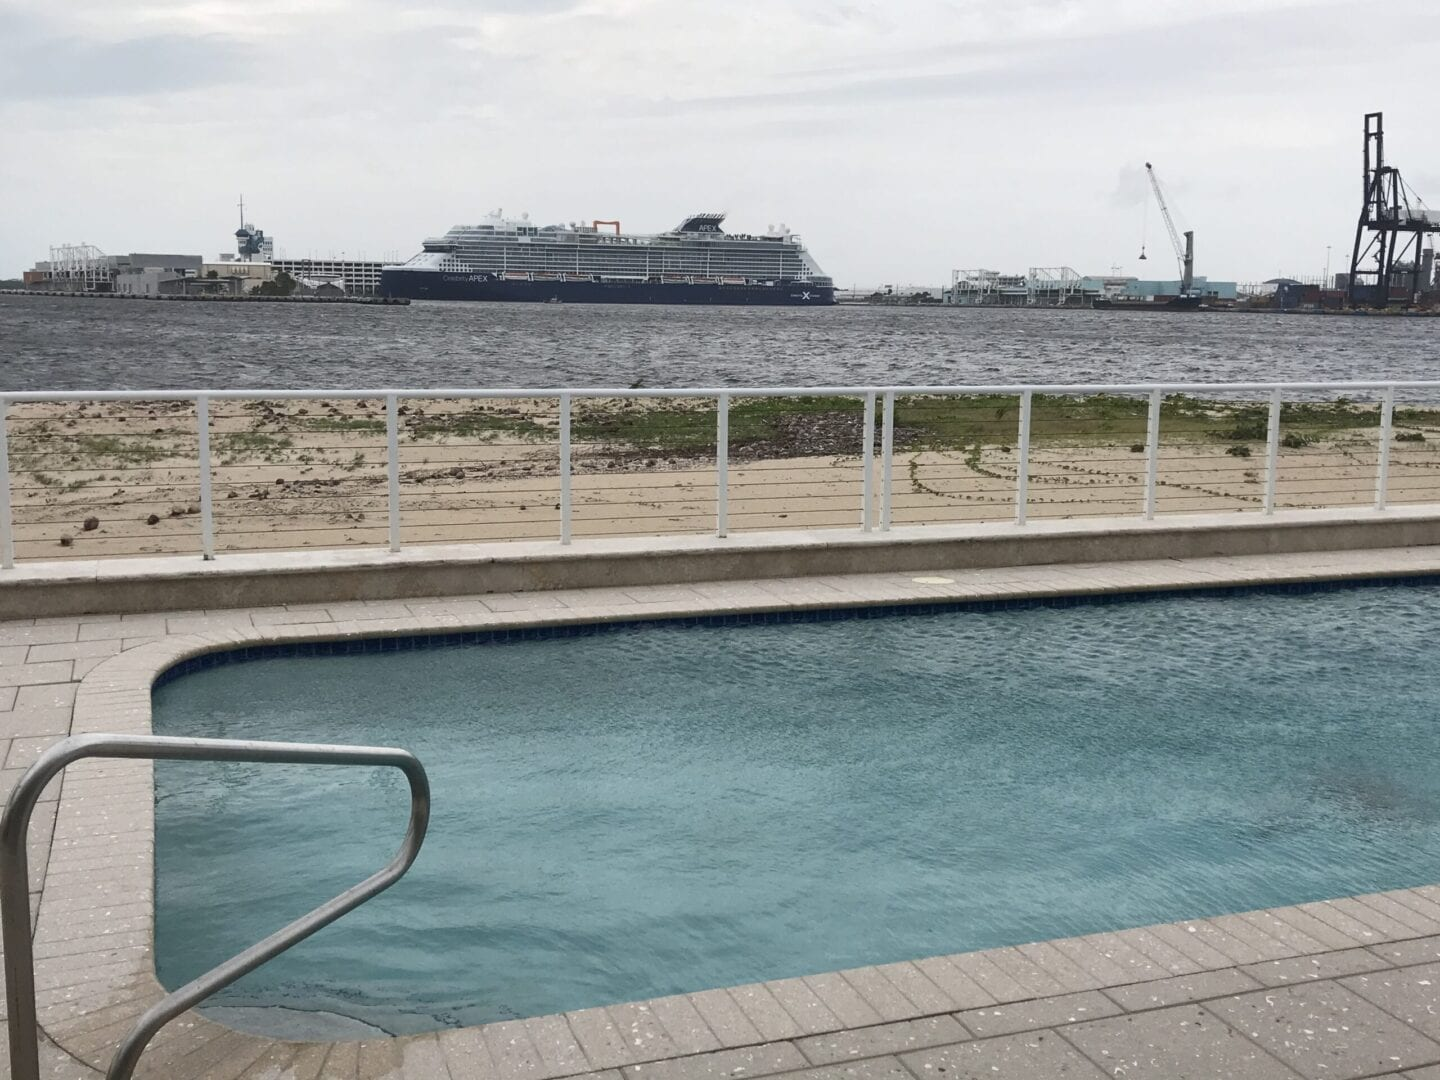 Rounded rectangle pool (different angle) near the ocean with a cruise ship passing by